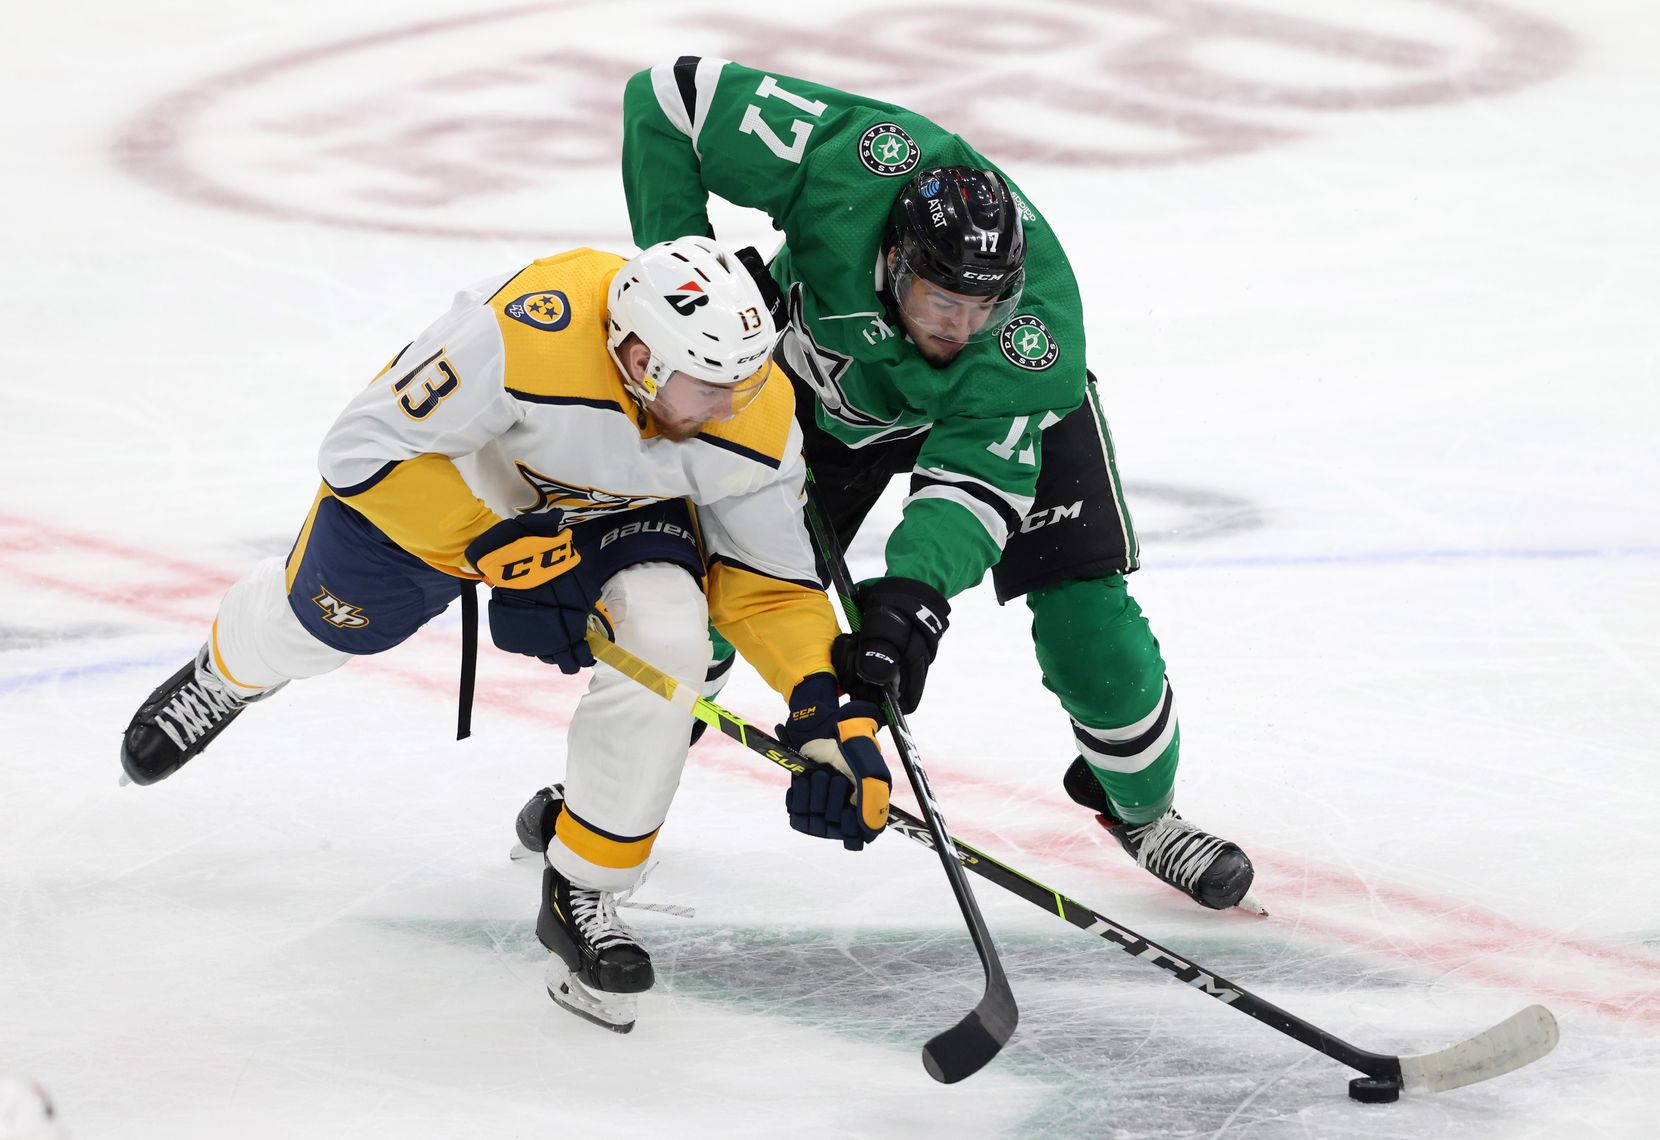 Dallas Stars Nicholas Caamano (17) and Nashville Predators center Yakov Trenin (13) fight for possession during the second period of play in the Stars home opener at American Airlines Center on Friday, January 22, 2021in Dallas. (Vernon Bryant/The Dallas Morning News)